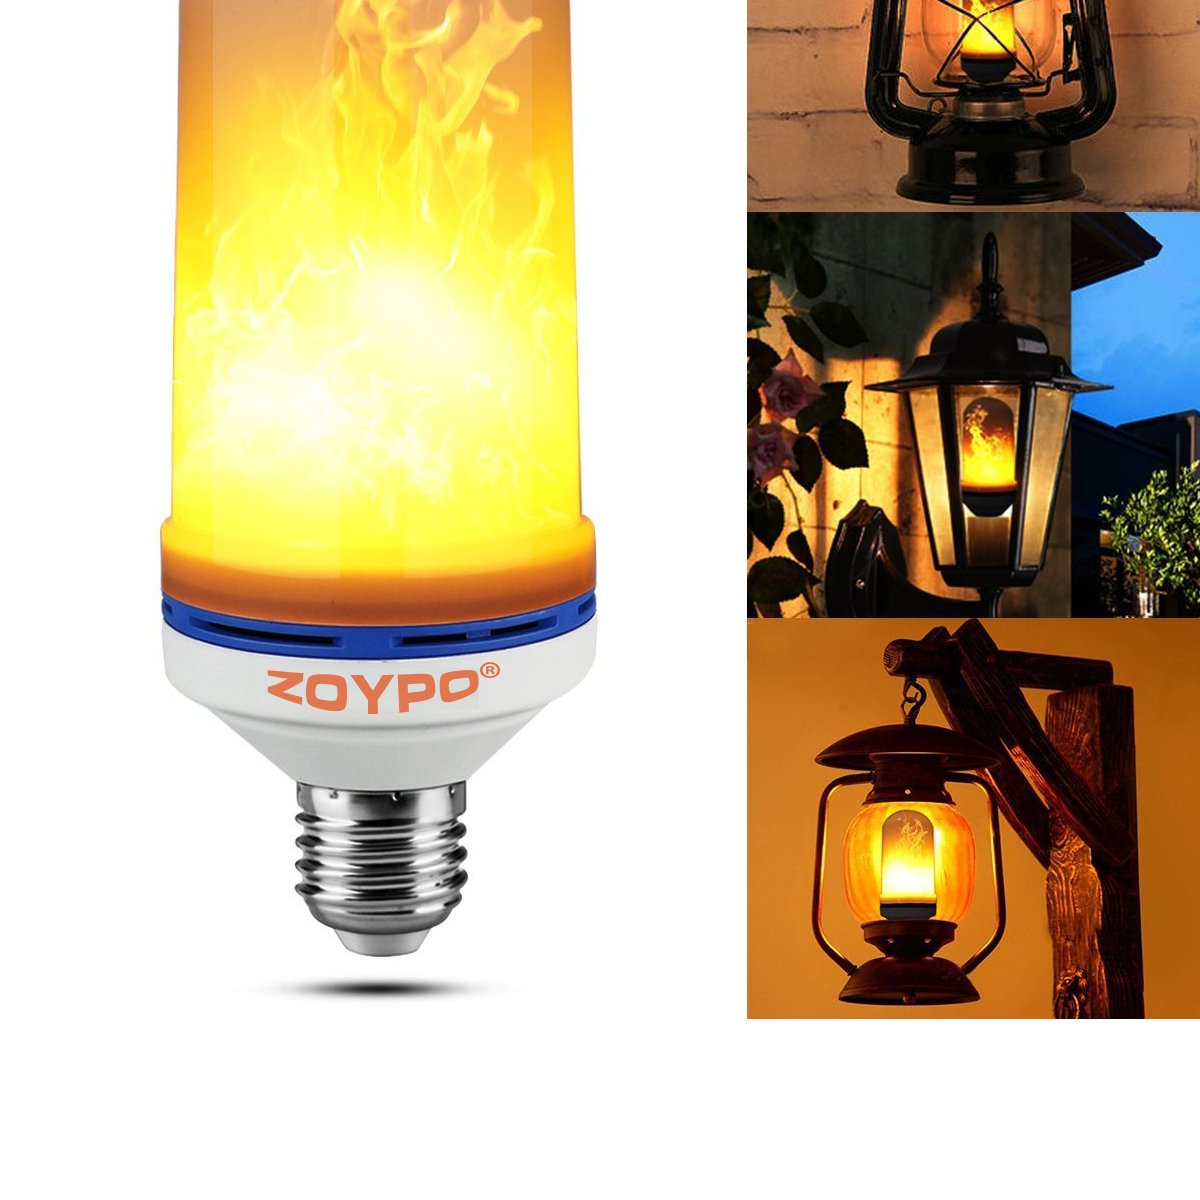 ZOYPO LED Flame Effect Light Bulb, E26 LED Flickering Fire-Effect Light Bulbs, 105pcs 2835 LED Beads (6.1 x 2.3 inches) Atmosphere Lighting Vintage Fire-Effect Light Bulb for Home/Business Decoration